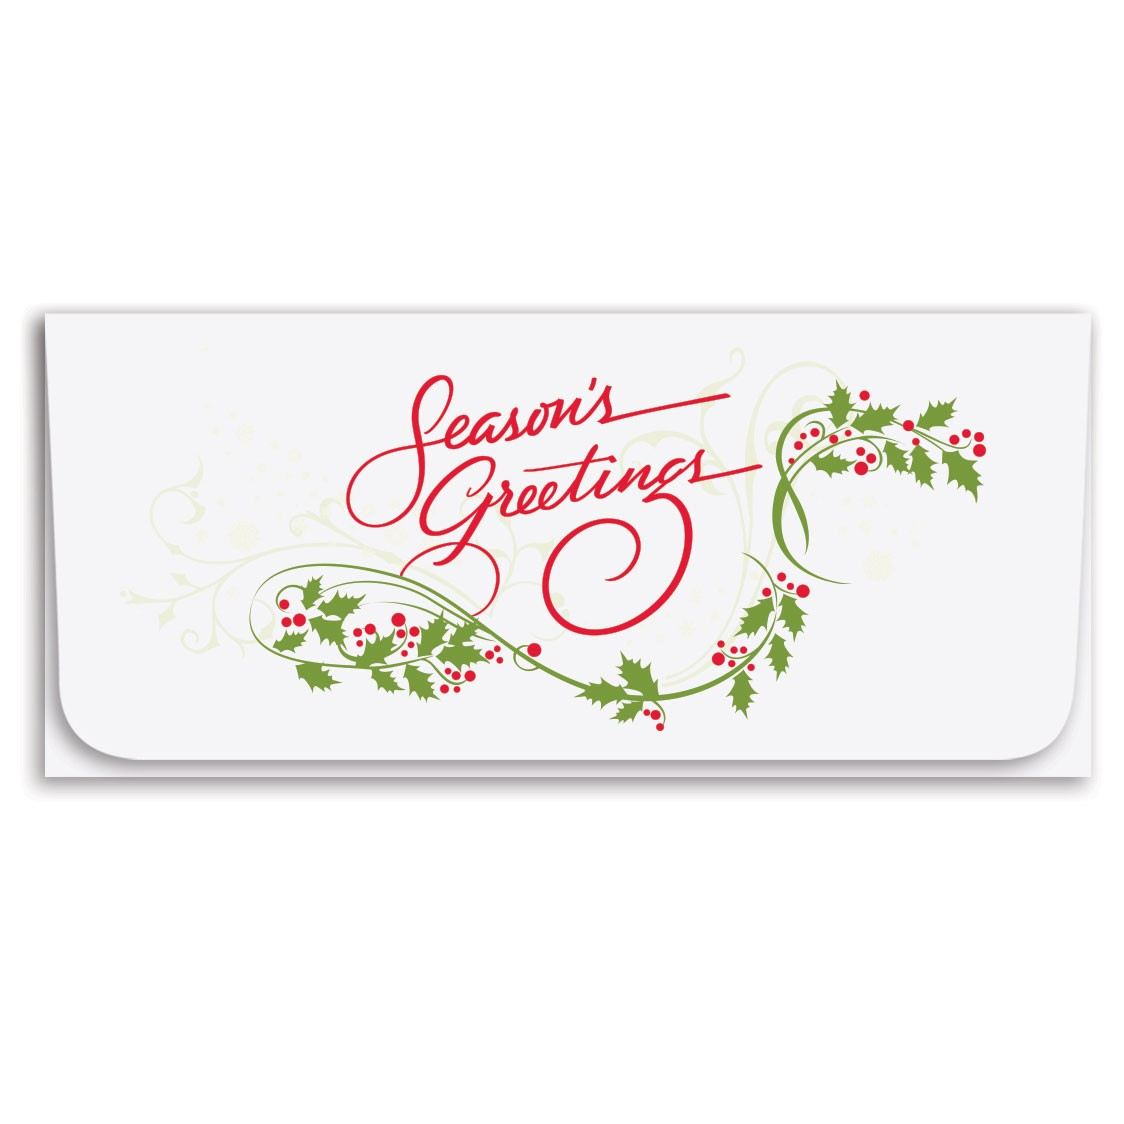 currency envelopes holiday season s greetings lce 298 block